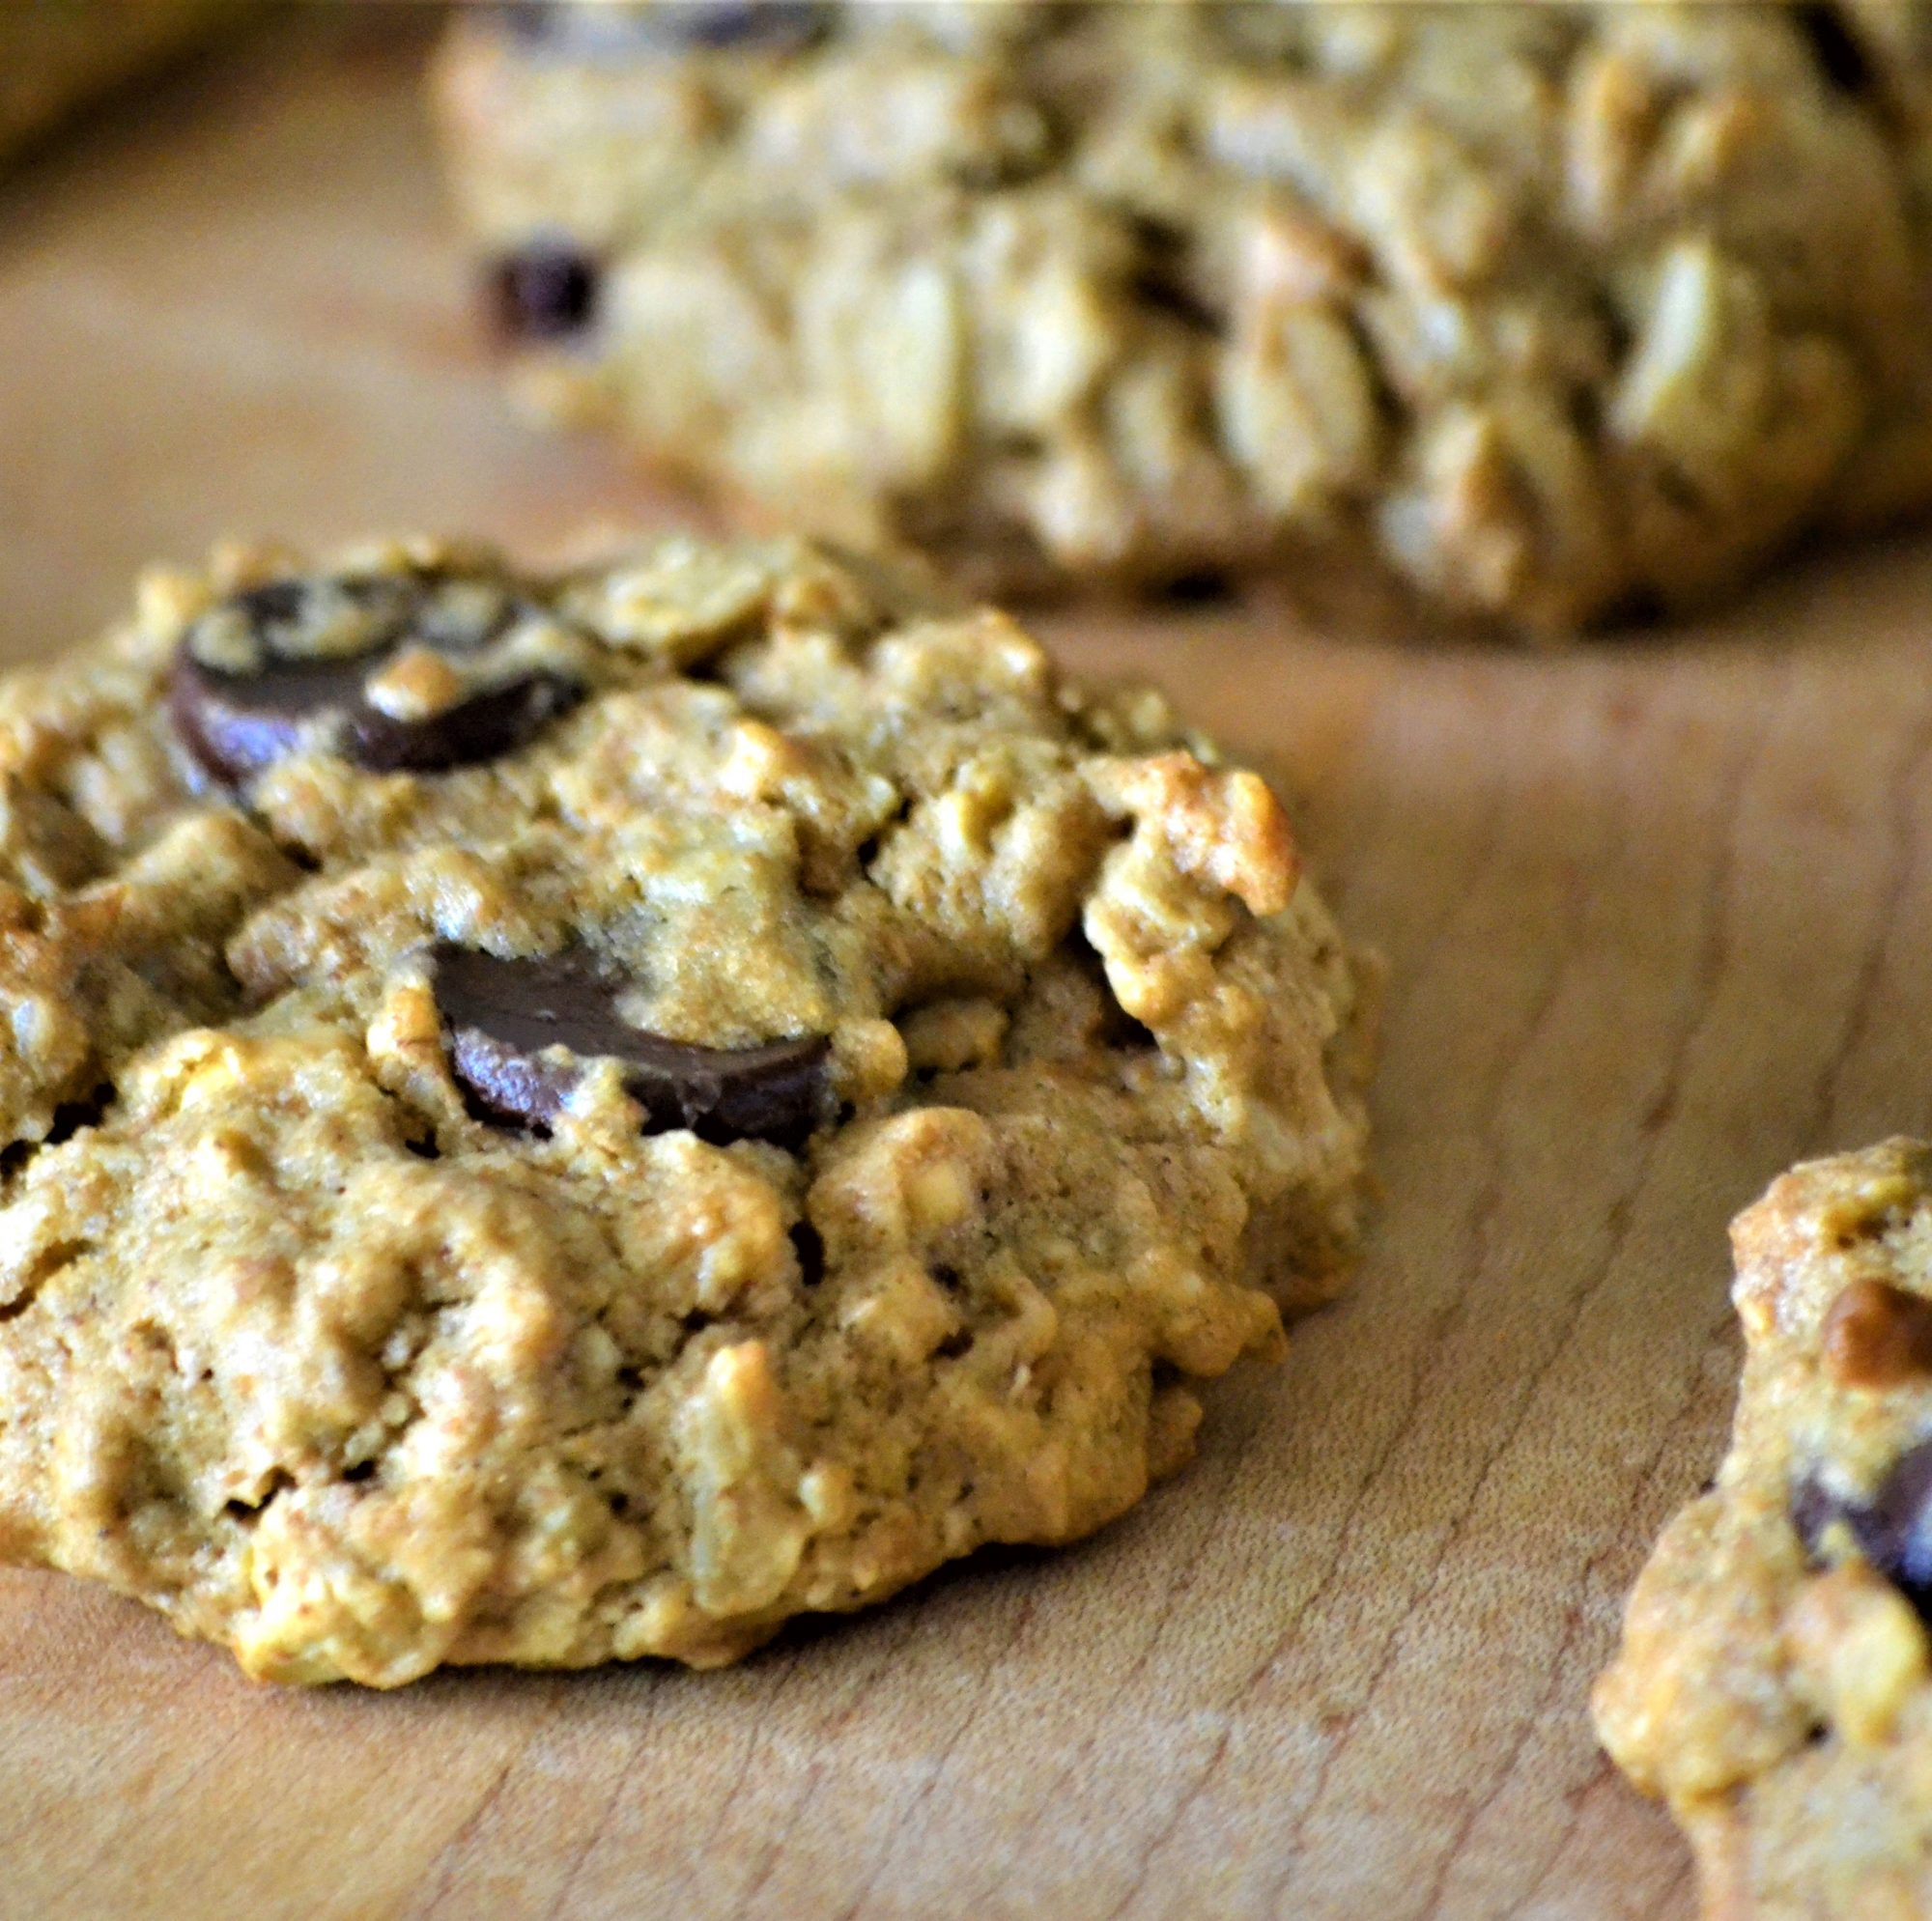 vegan chocolate chip oatmeal and nut cookies on a wooden board closeup